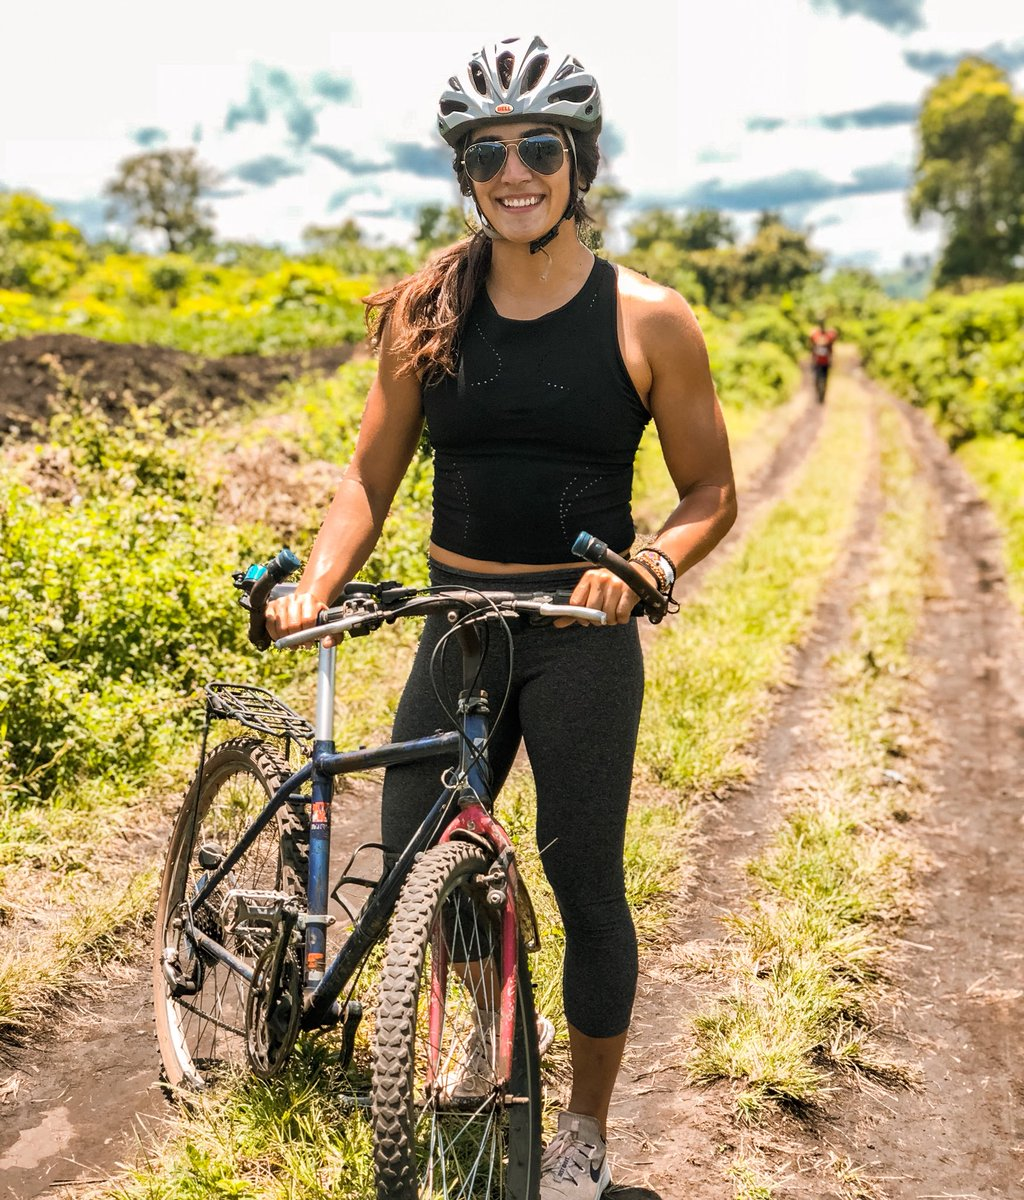 One of my favorite activities to do when I travel ➡️ biking 🚴🏽♀️ So easy to see a whole lot and of course to get some good fitness in. 🤞 Uganda is so beautiful!